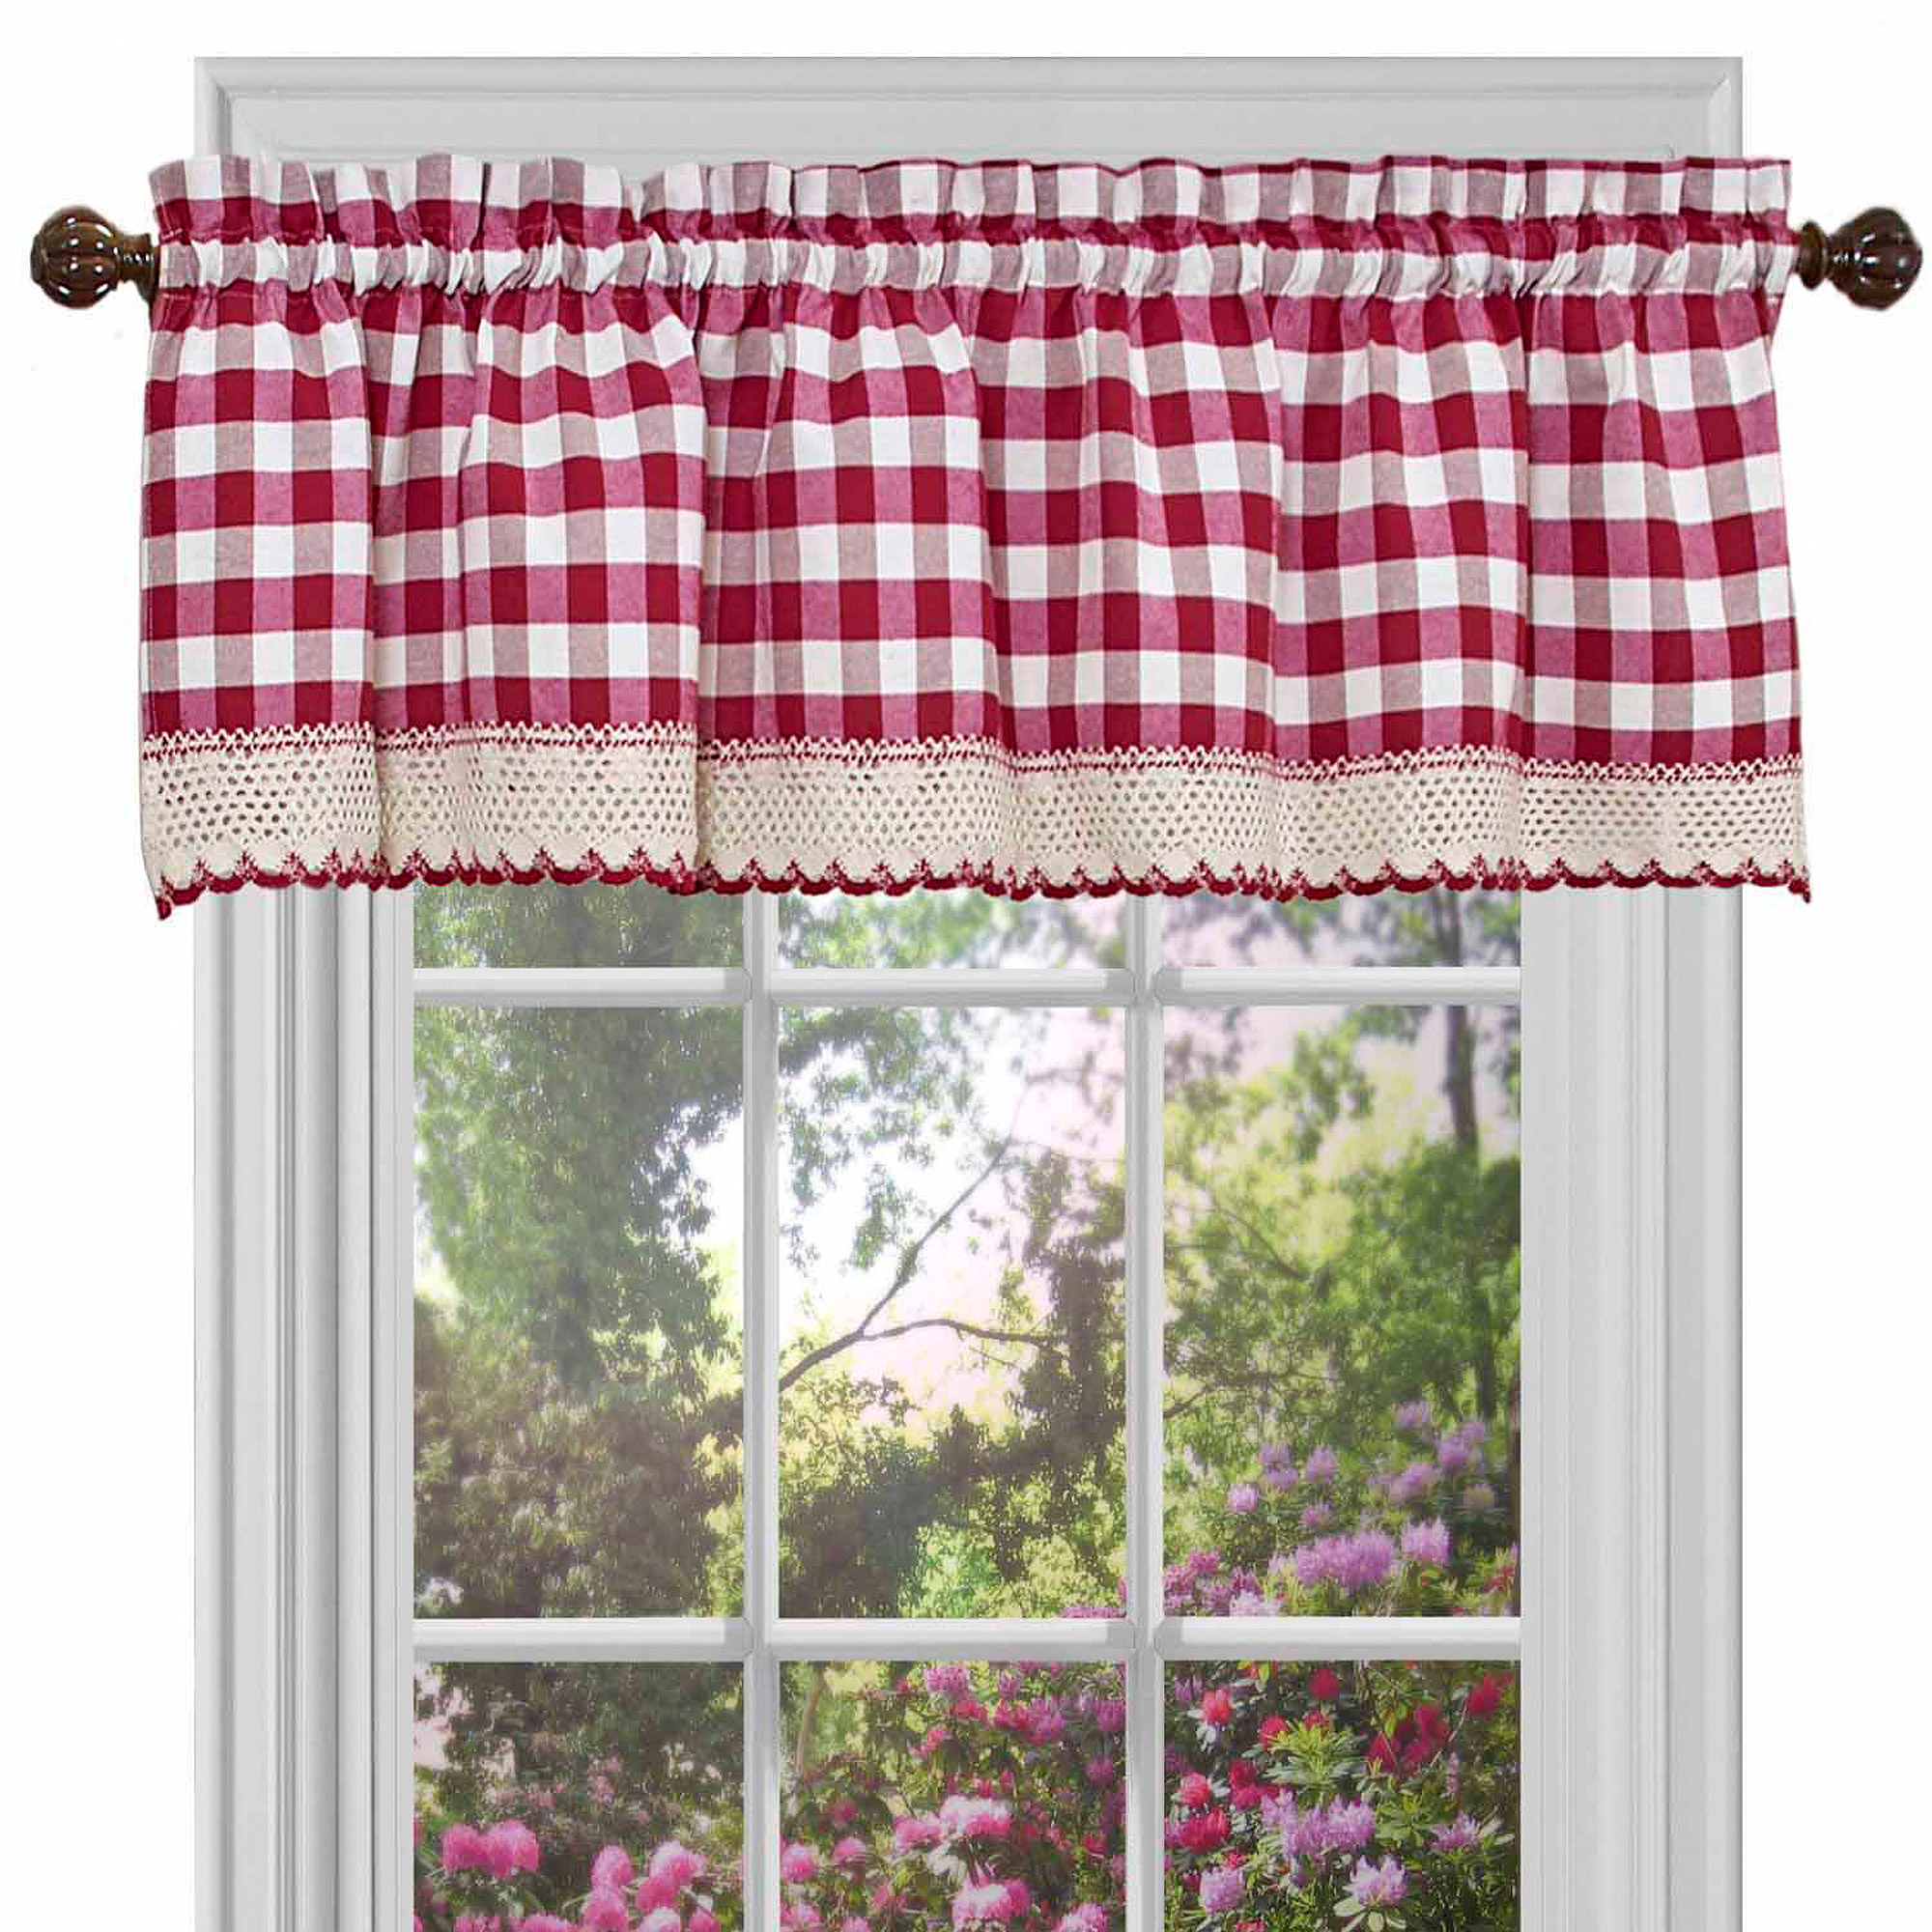 White Kitchen Valance buffalo check valance - walmart